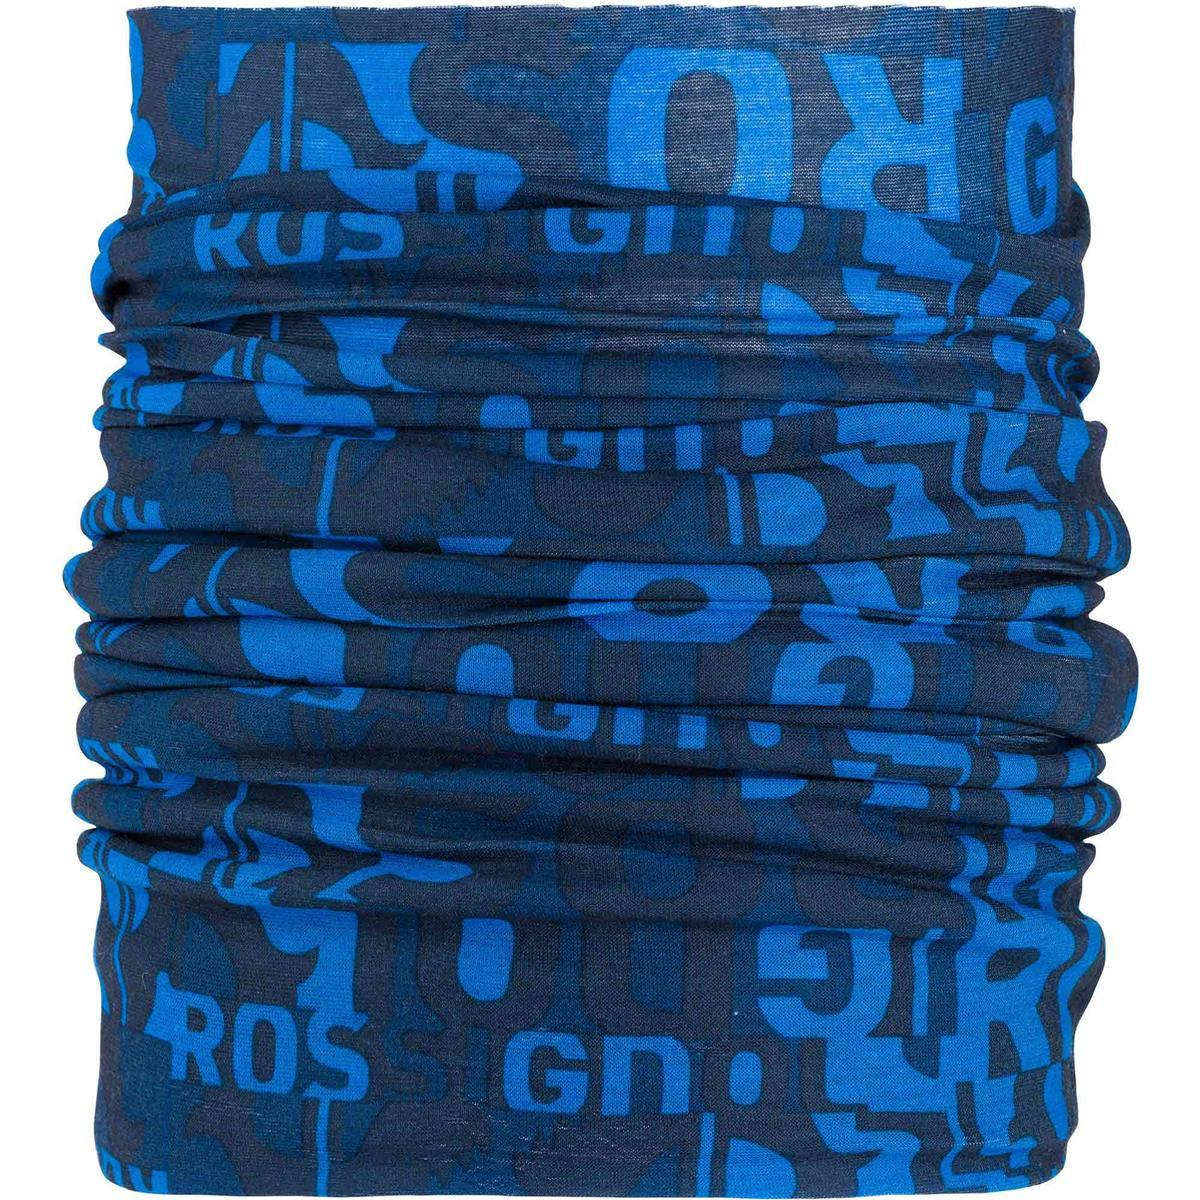 Rossignol Apparel Rossi Warm Neck X3